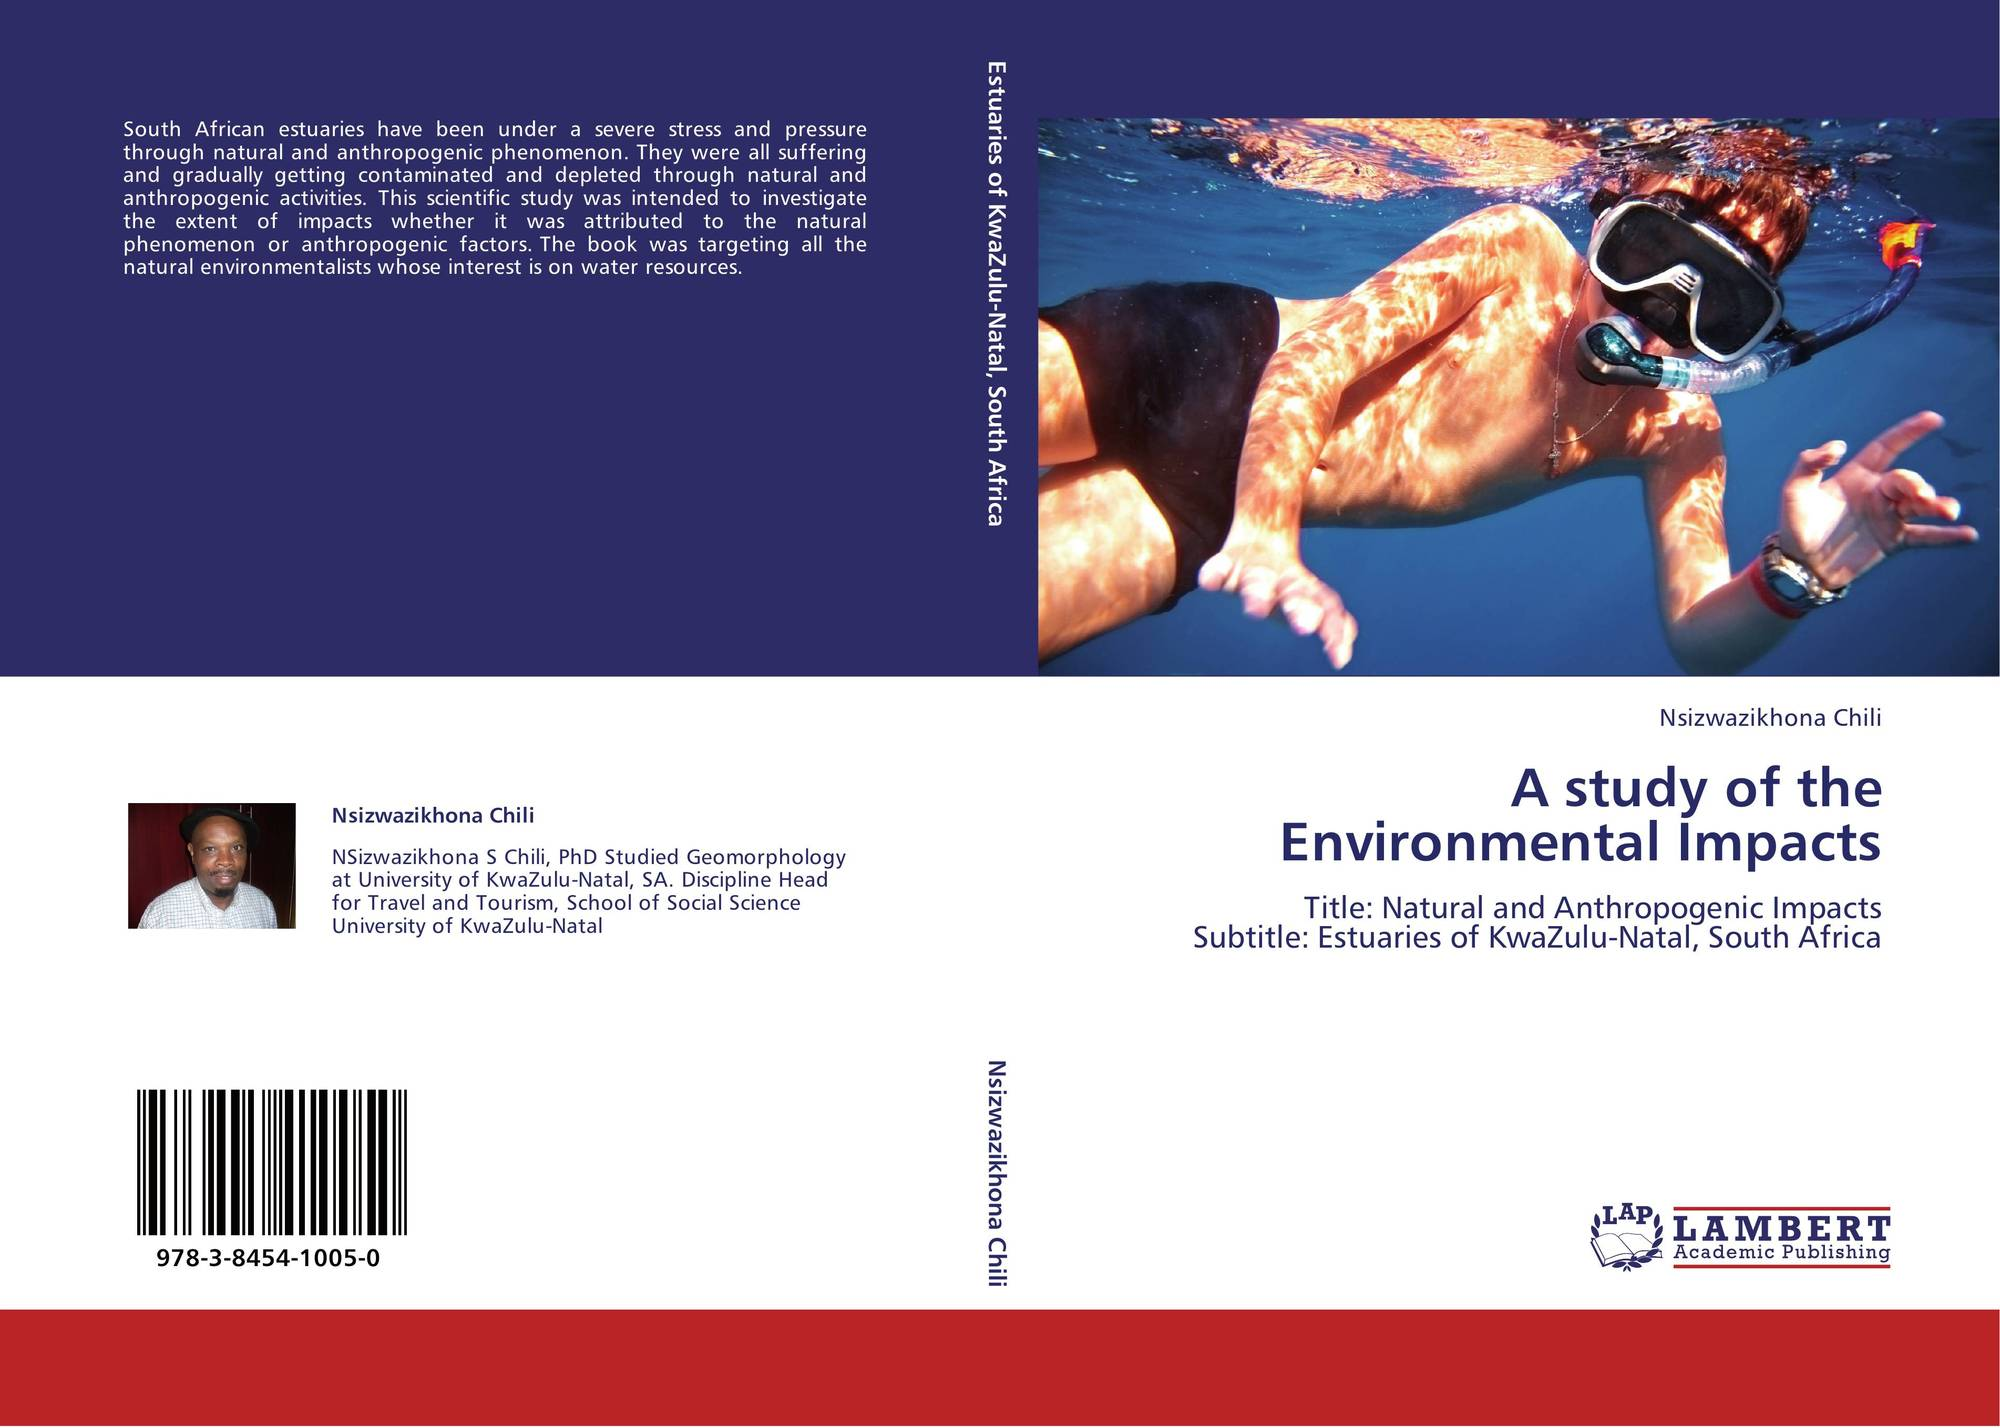 a study of the impact of environmental crimes The theory of crime prevention through environmental design by ronald v clarke (rutgers) the theory of crime prevention through environmental design is based on.